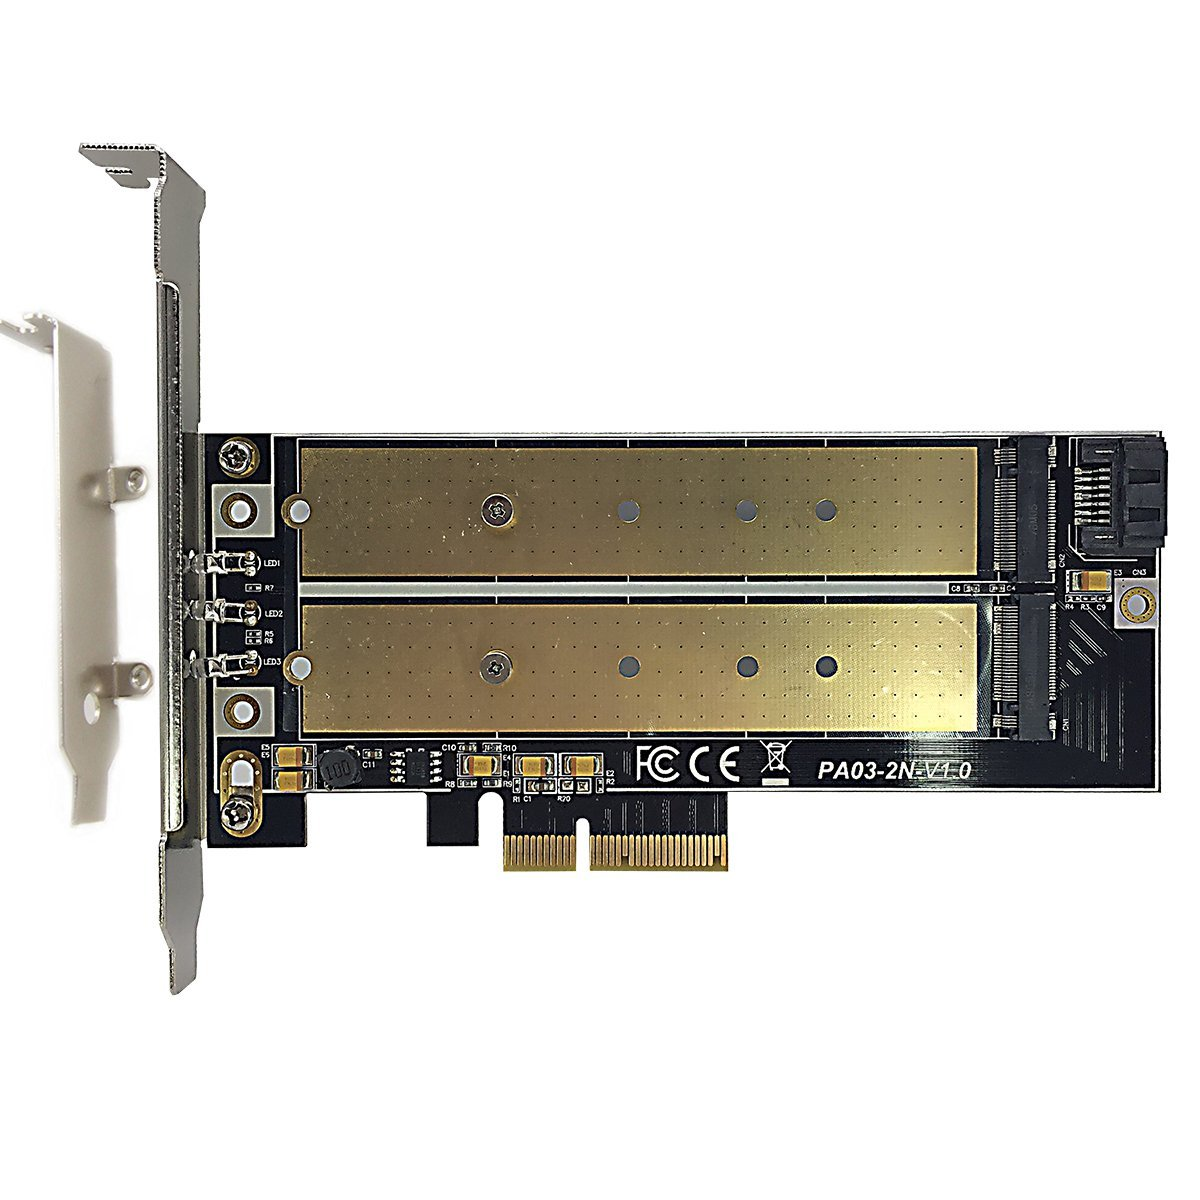 GLOTRENDS M.2 PCIe NVMe or PCIe AHCI SSD to PCIe 3.0 x4 and M.2 SATA SSD to SATA III Adapter Card (Support 22110/2280/2260/2242/2230)